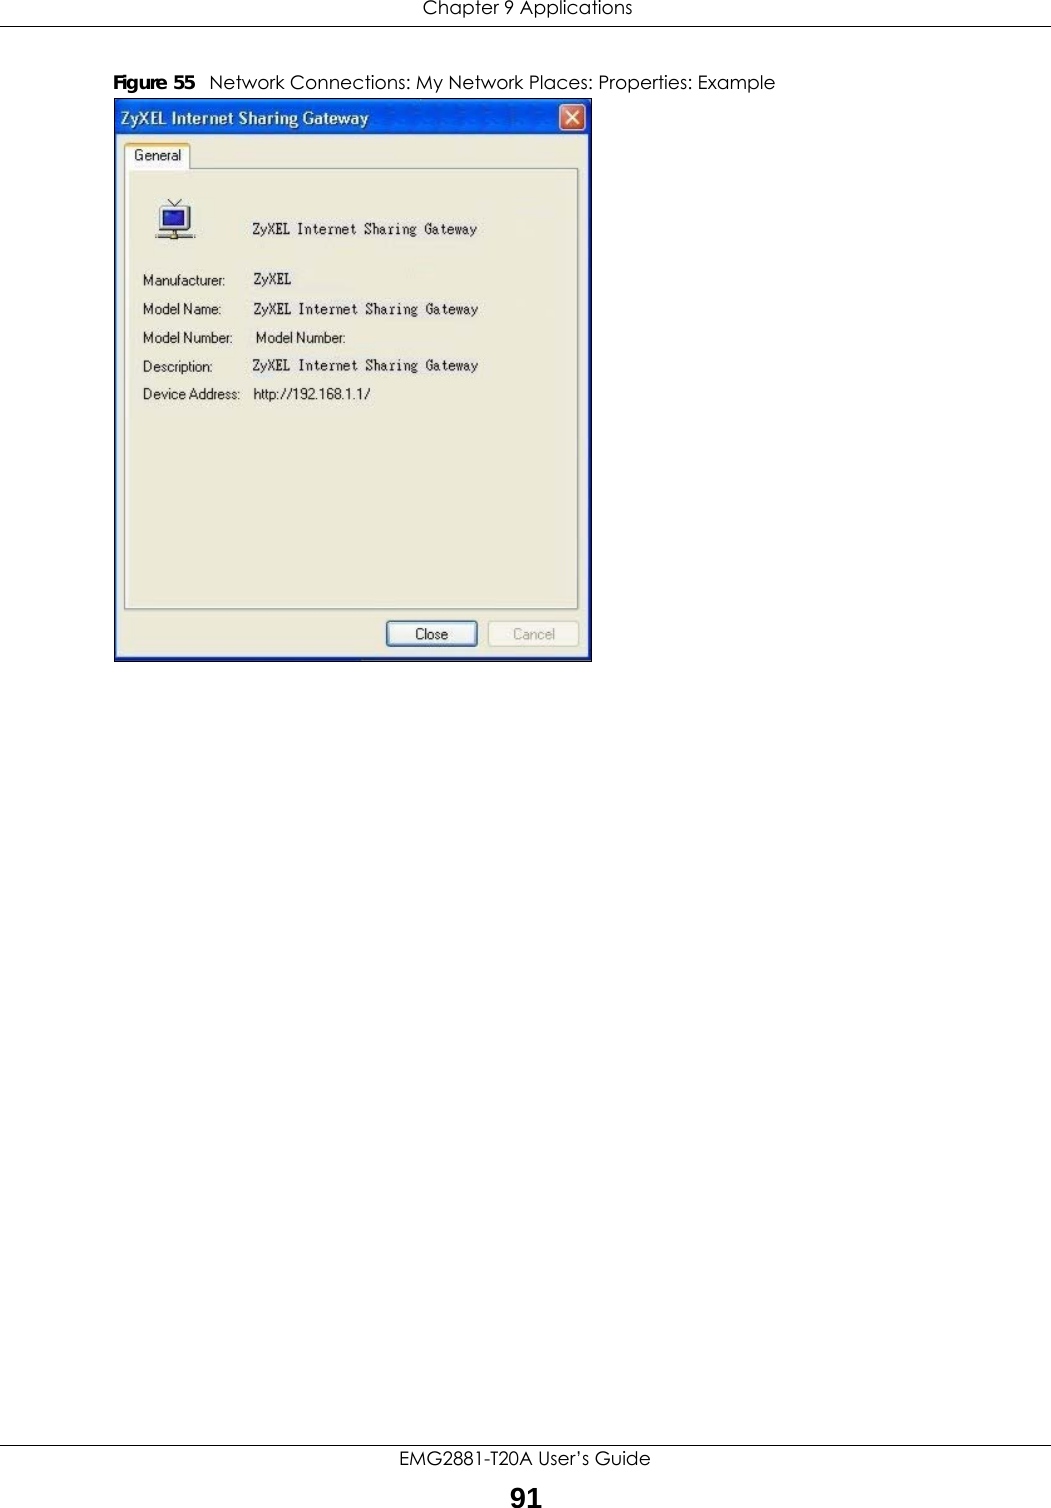 Chapter 9 ApplicationsEMG2881-T20A User's Guide91Figure 55   Network Connections: My Network Places: Properties: Example